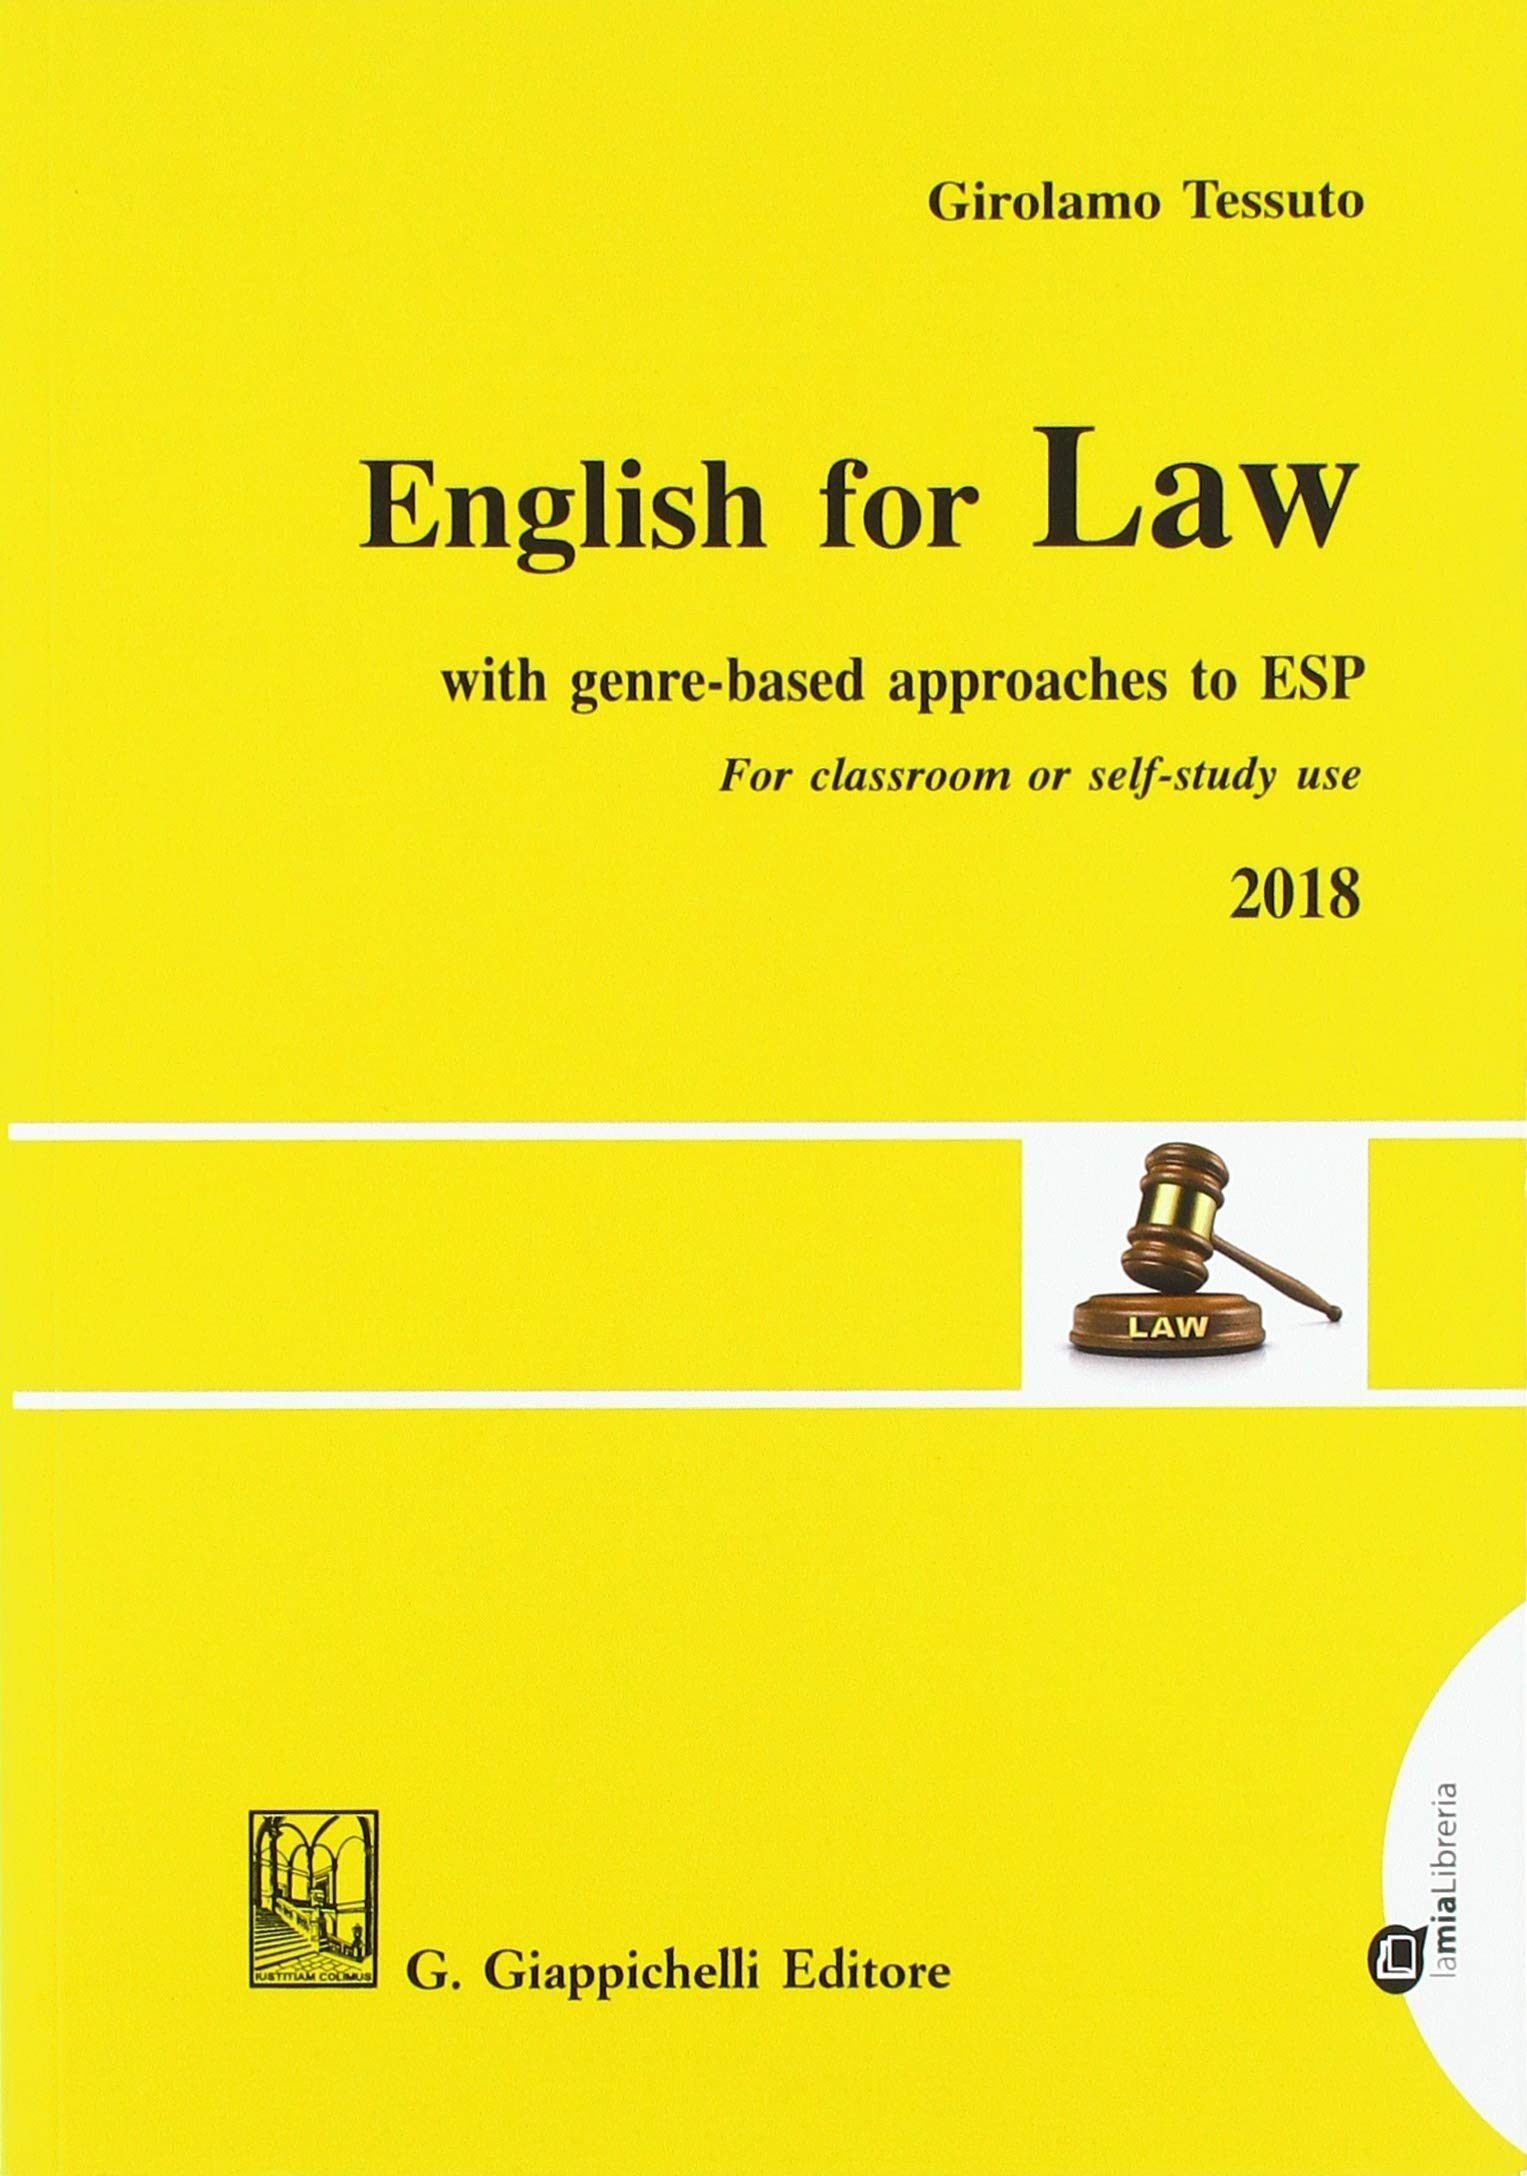 English for law. With genre-based approaches to ESP. For classroom or self-study use 2018 (Inglese) Copertina flessibile – 24 set 2018 Girolamo Tessuto Giappichelli 8892116061 LINGUA INGLESE E ANGLOSASSONE